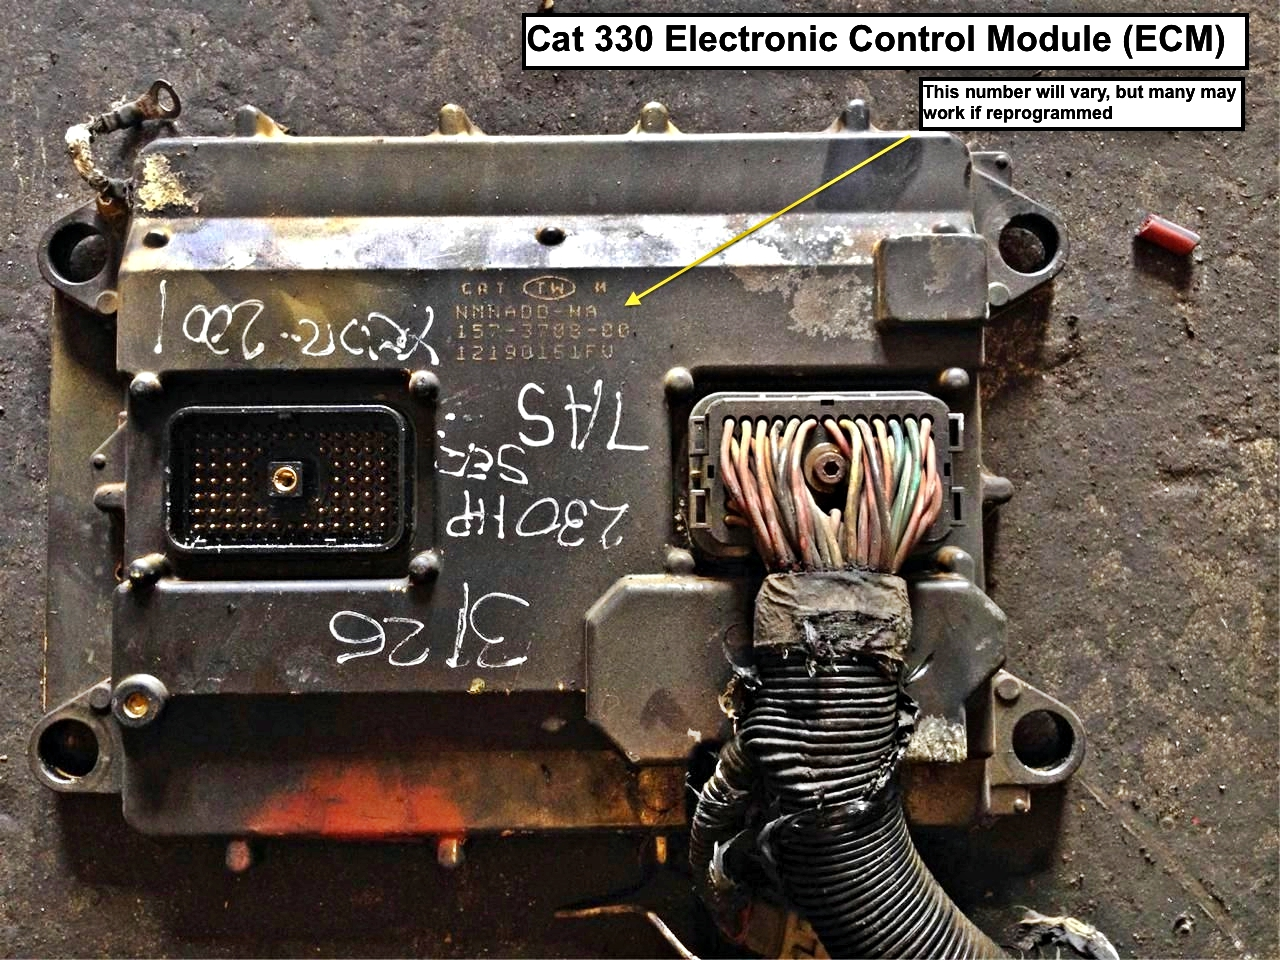 Cat C12 Ecm Wiring Diagram from static-assets.imageservice.cloud